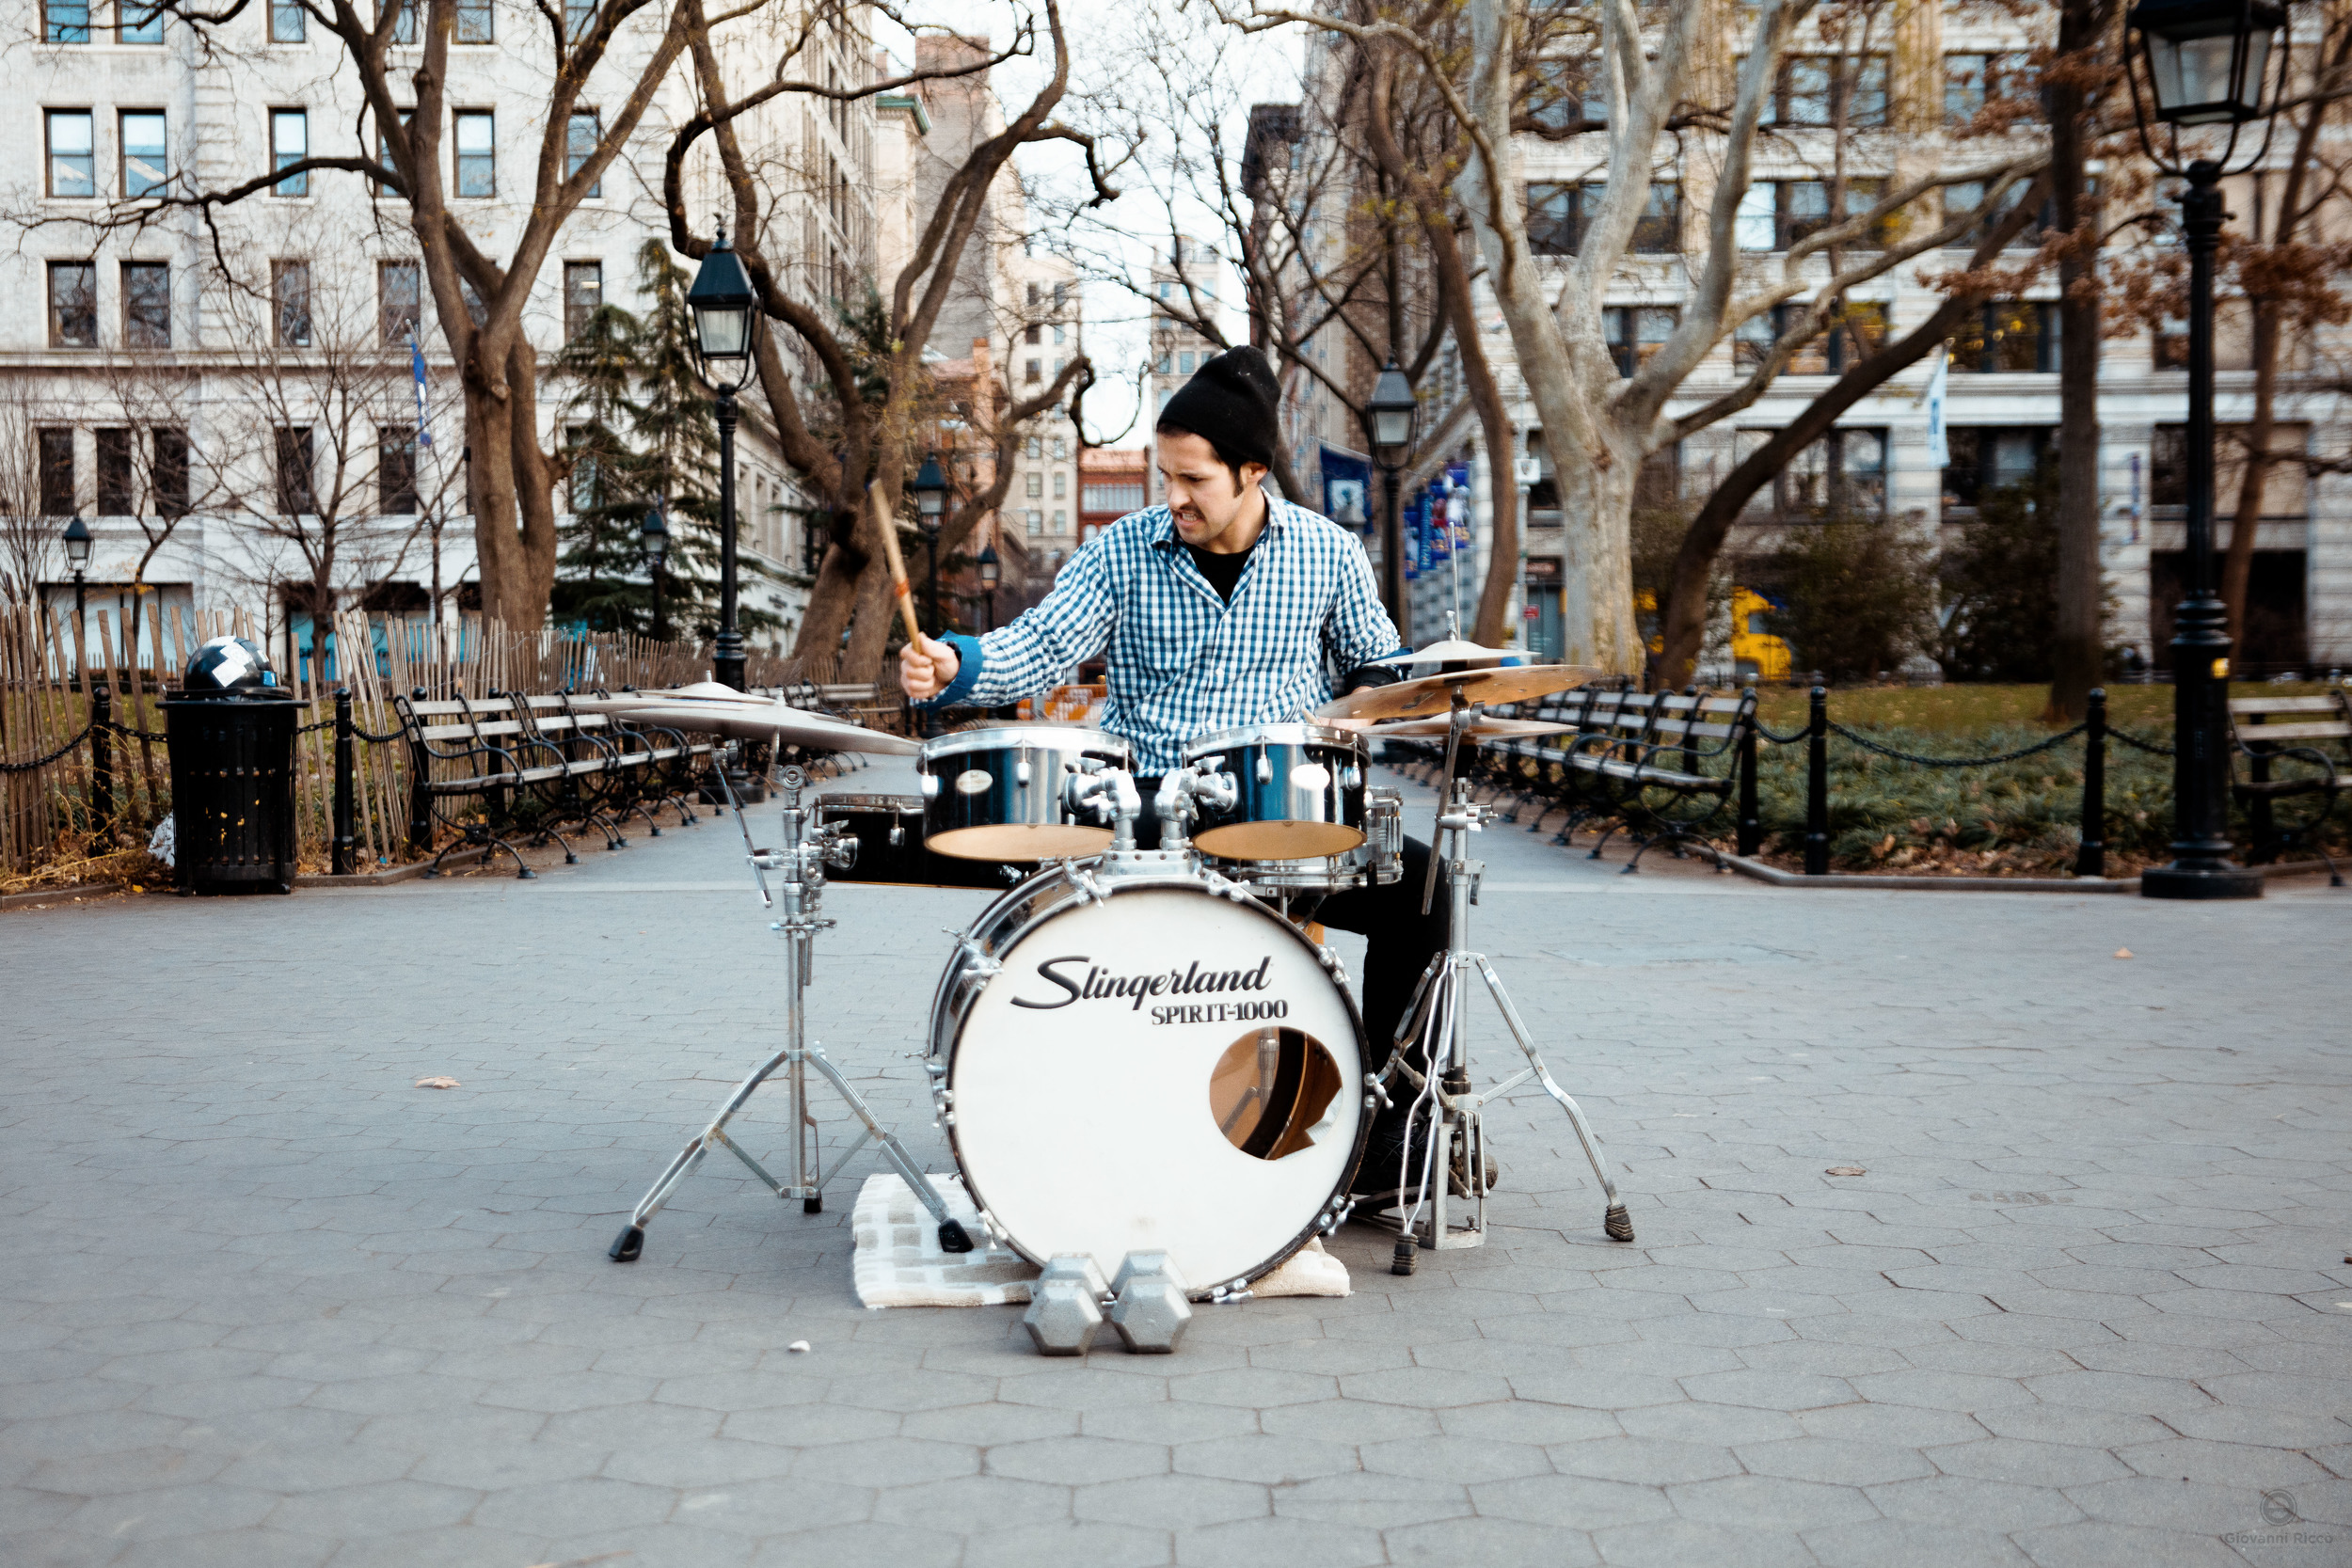 Street performer in NYC